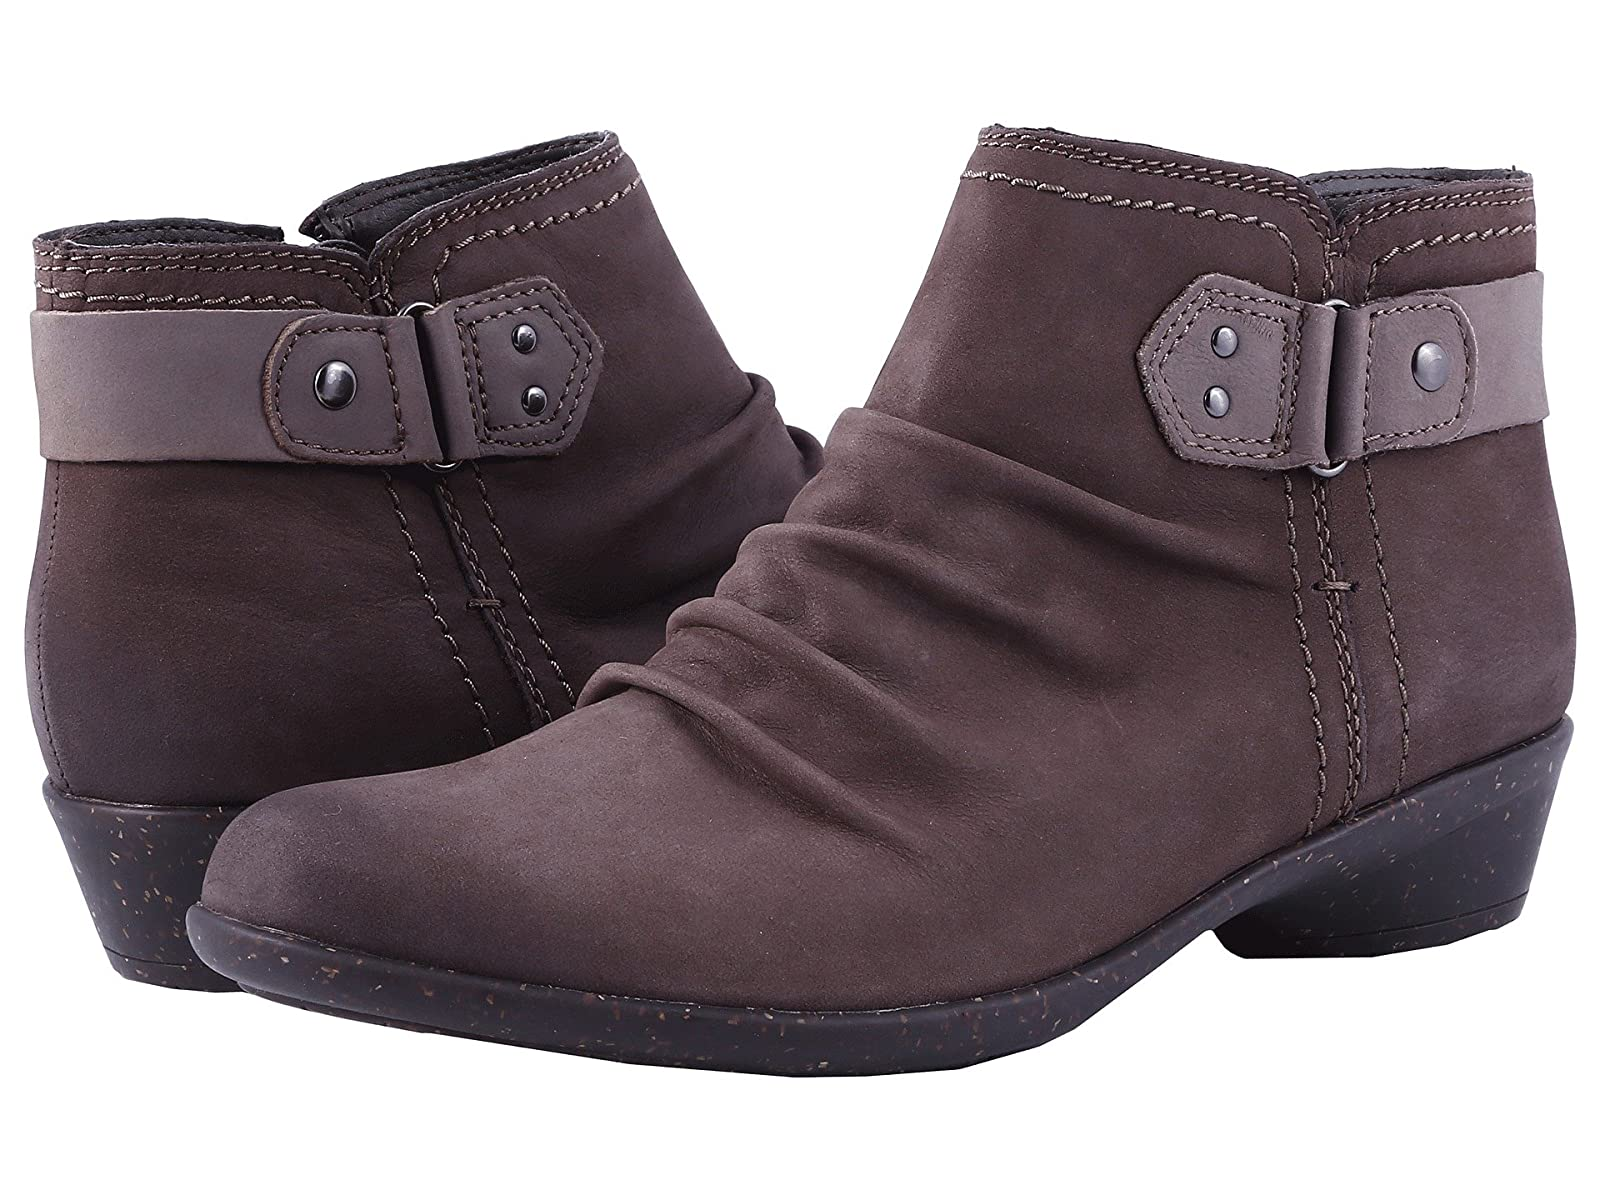 Rockport Cobb Hill Collection Cobb Hill NicoleEconomical and quality shoes